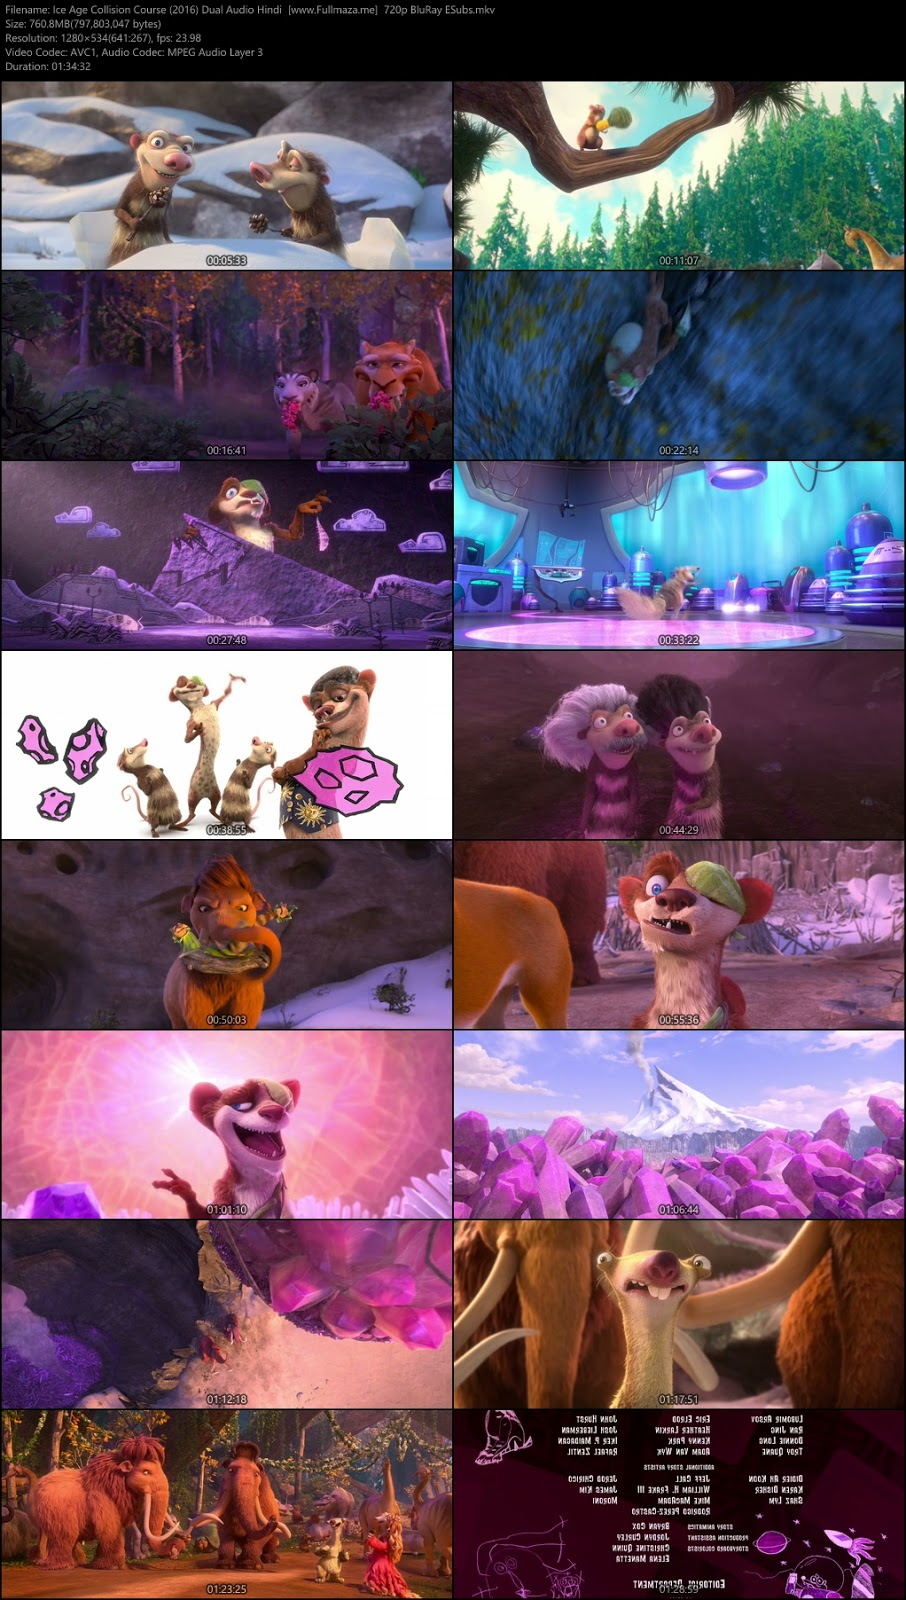 ice age 5 full movie in hindi free download mkv